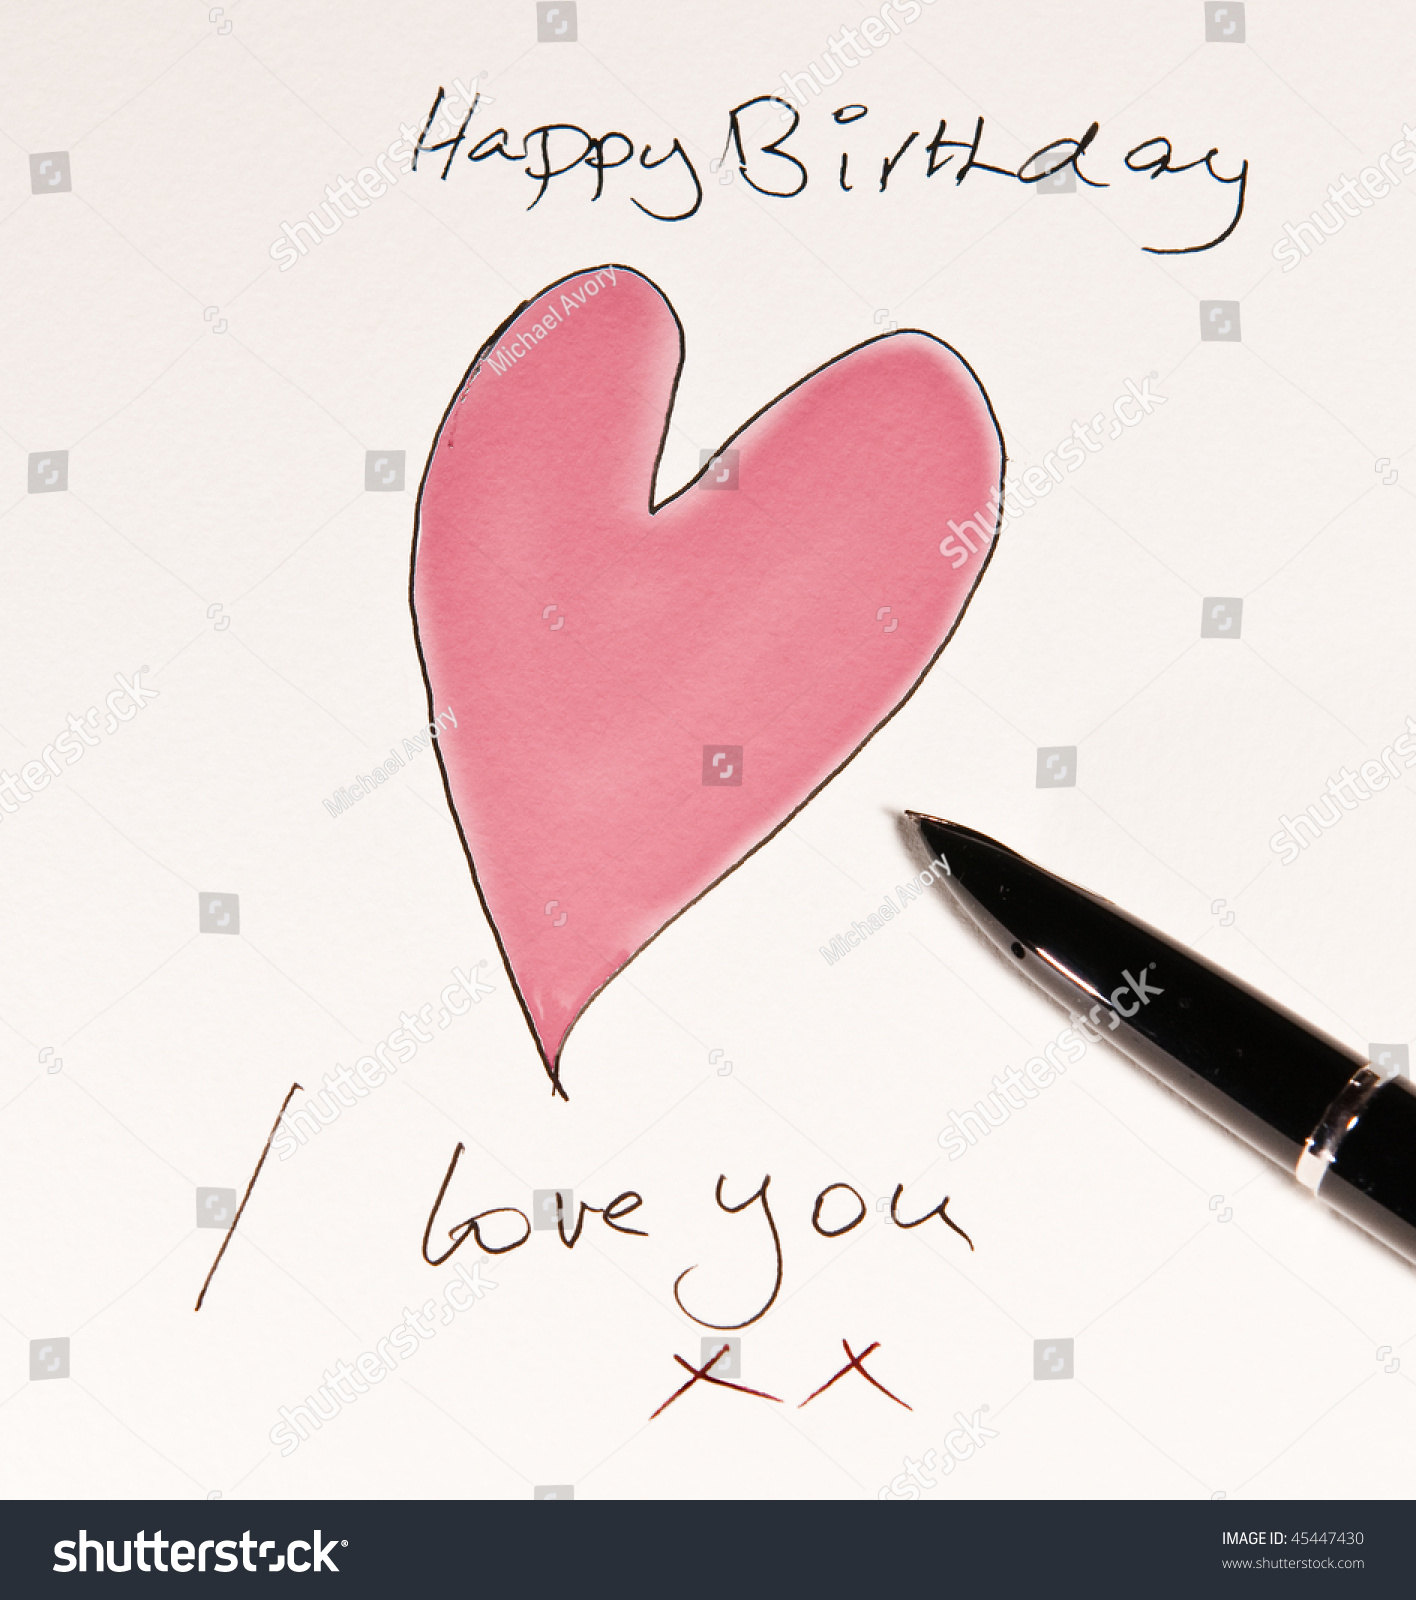 handmade romantic birthday card stock photo   shutterstock, Birthday card